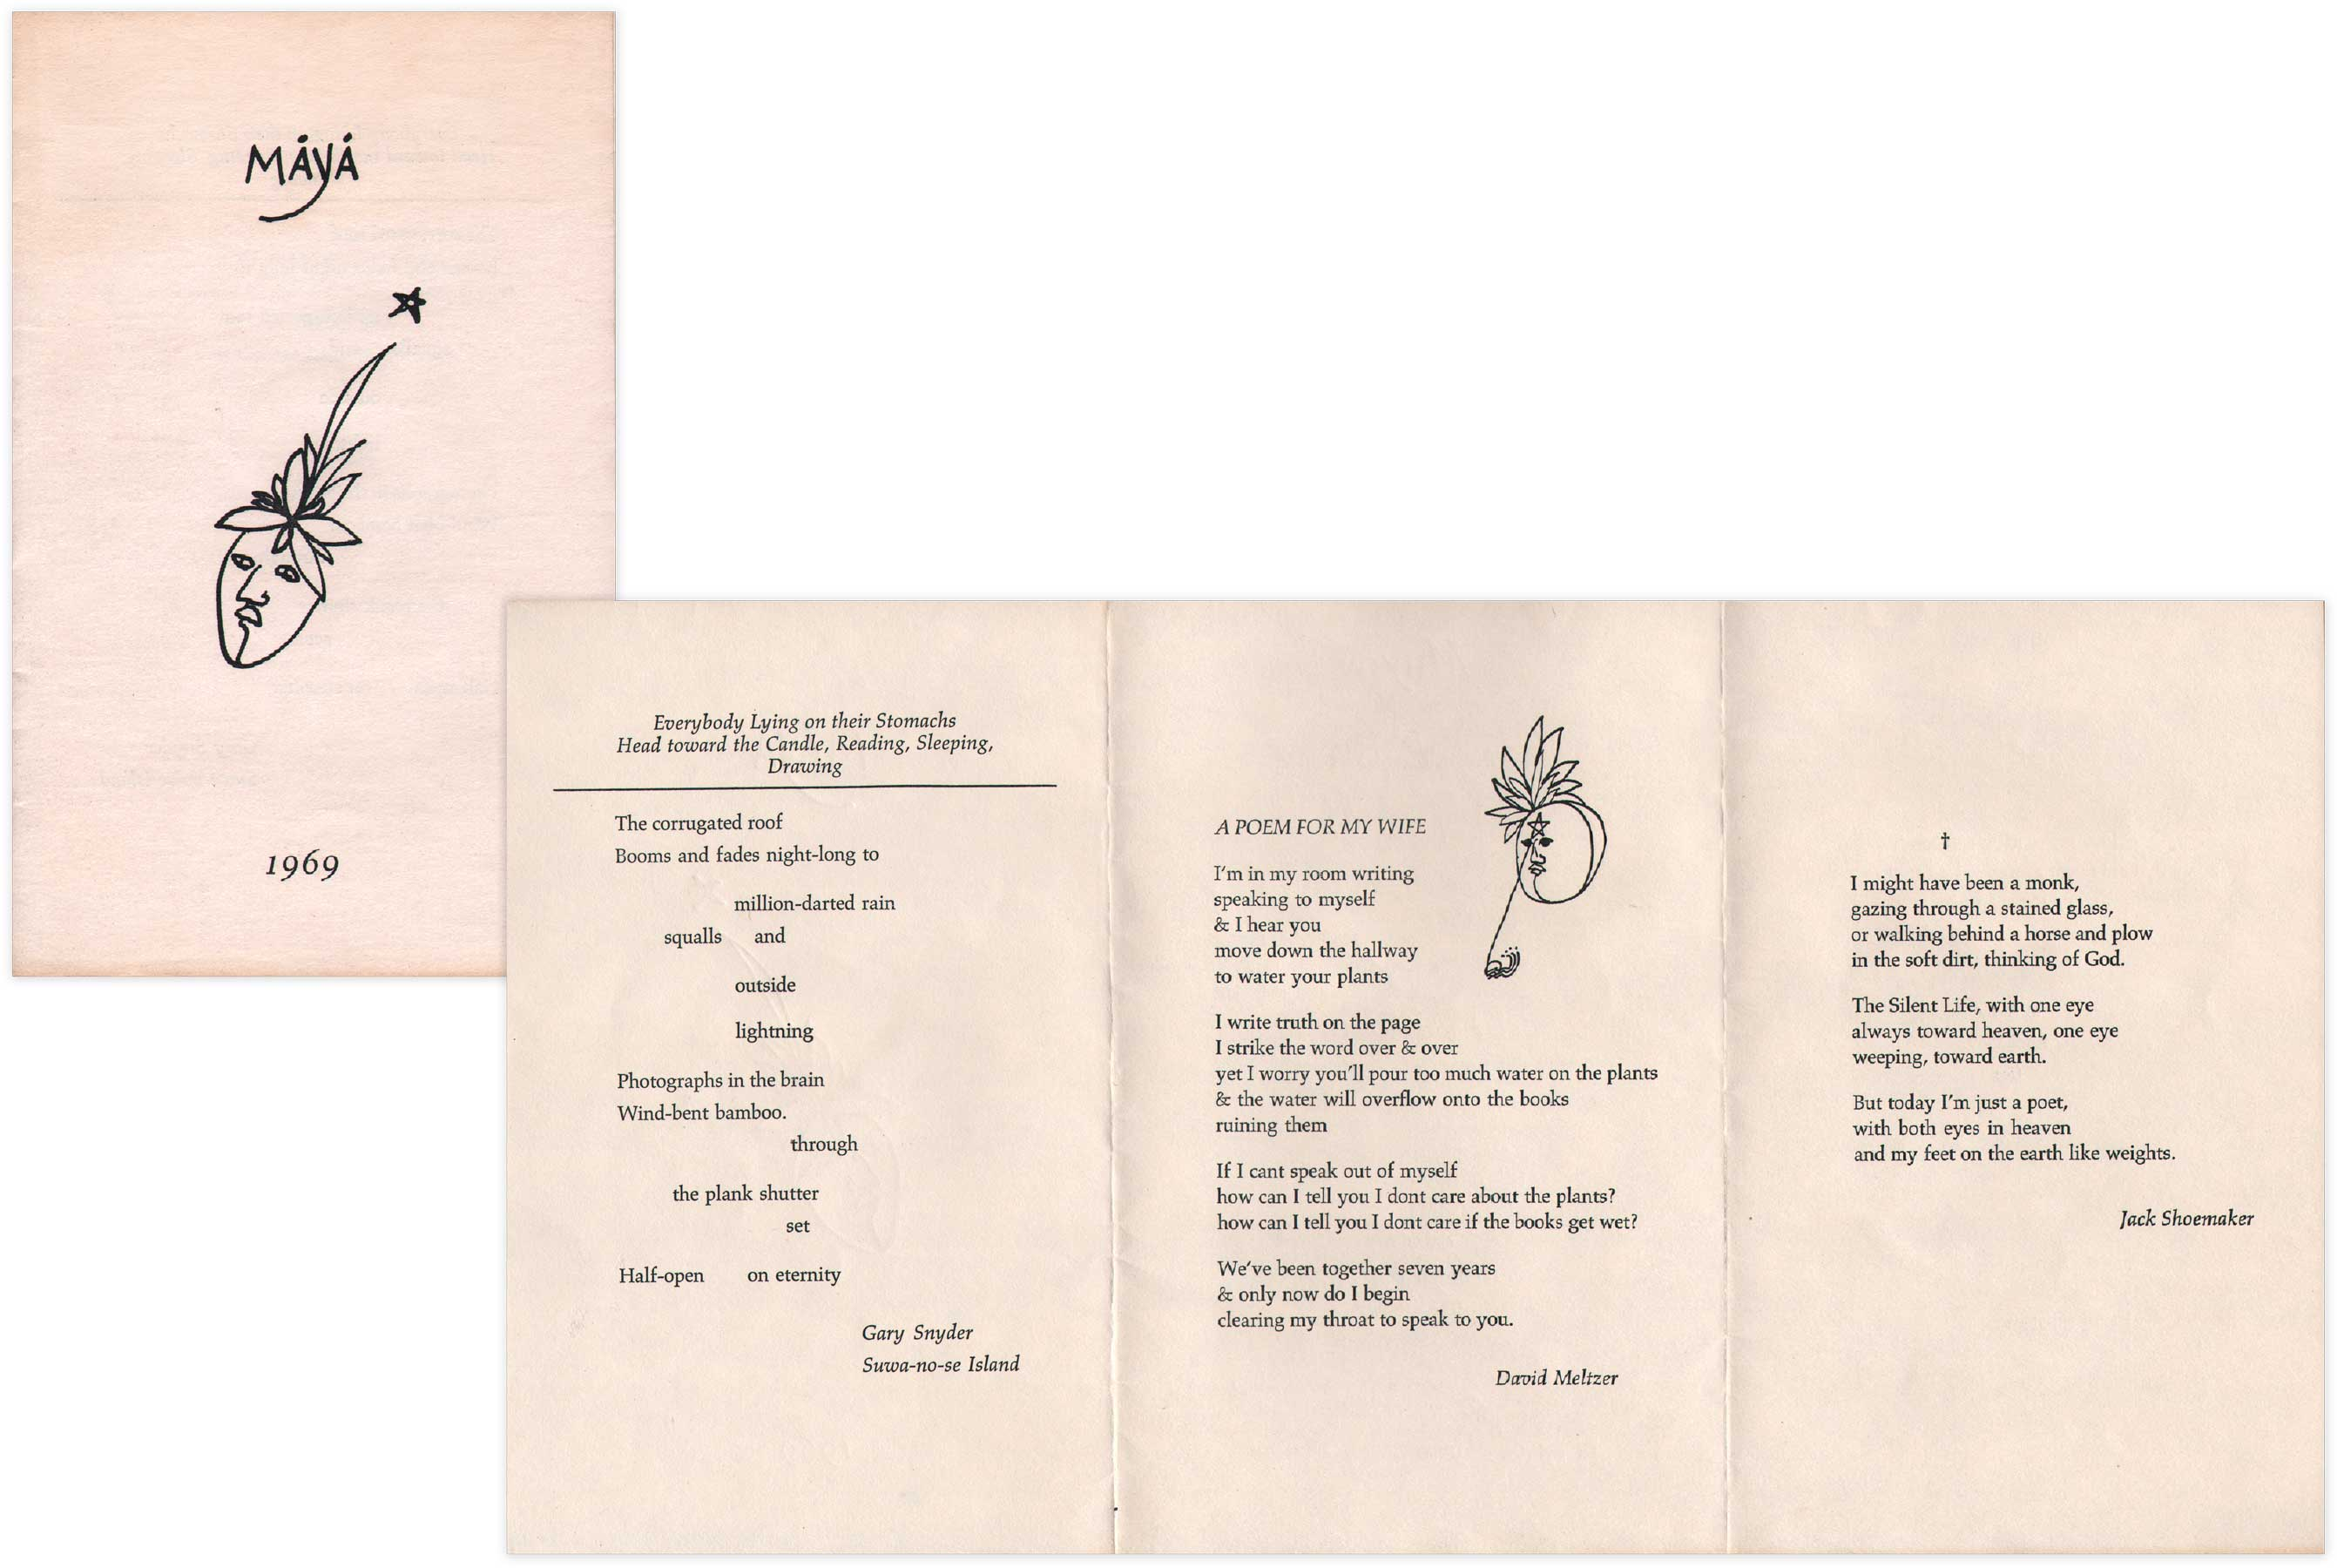 Page color doesnt print in word 2007 - These Nifty Pamphlets Were Printed In An Edition Of 1 000 For The Santa Barbara Poetry Festival In April 1969 By Clifford Burke At Cranium Press In San